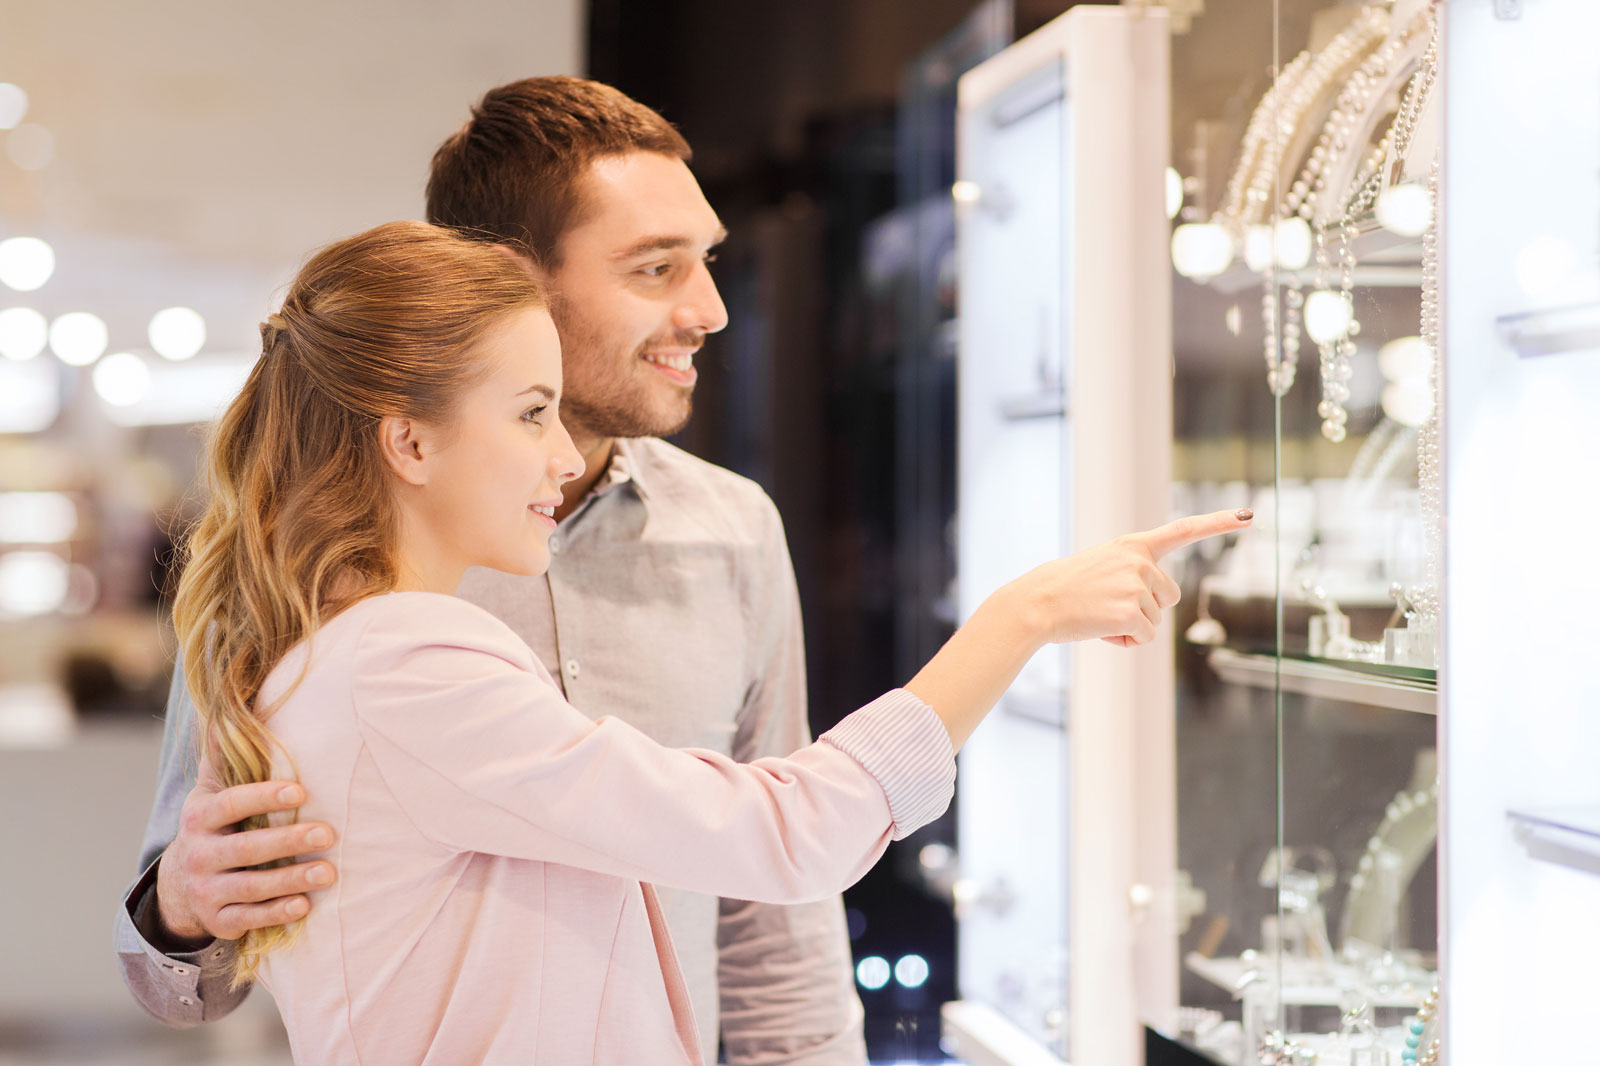 Couple Looking To Buy Jewelry | How To Pick Out The Best Jewelry Gifts For A Loved One